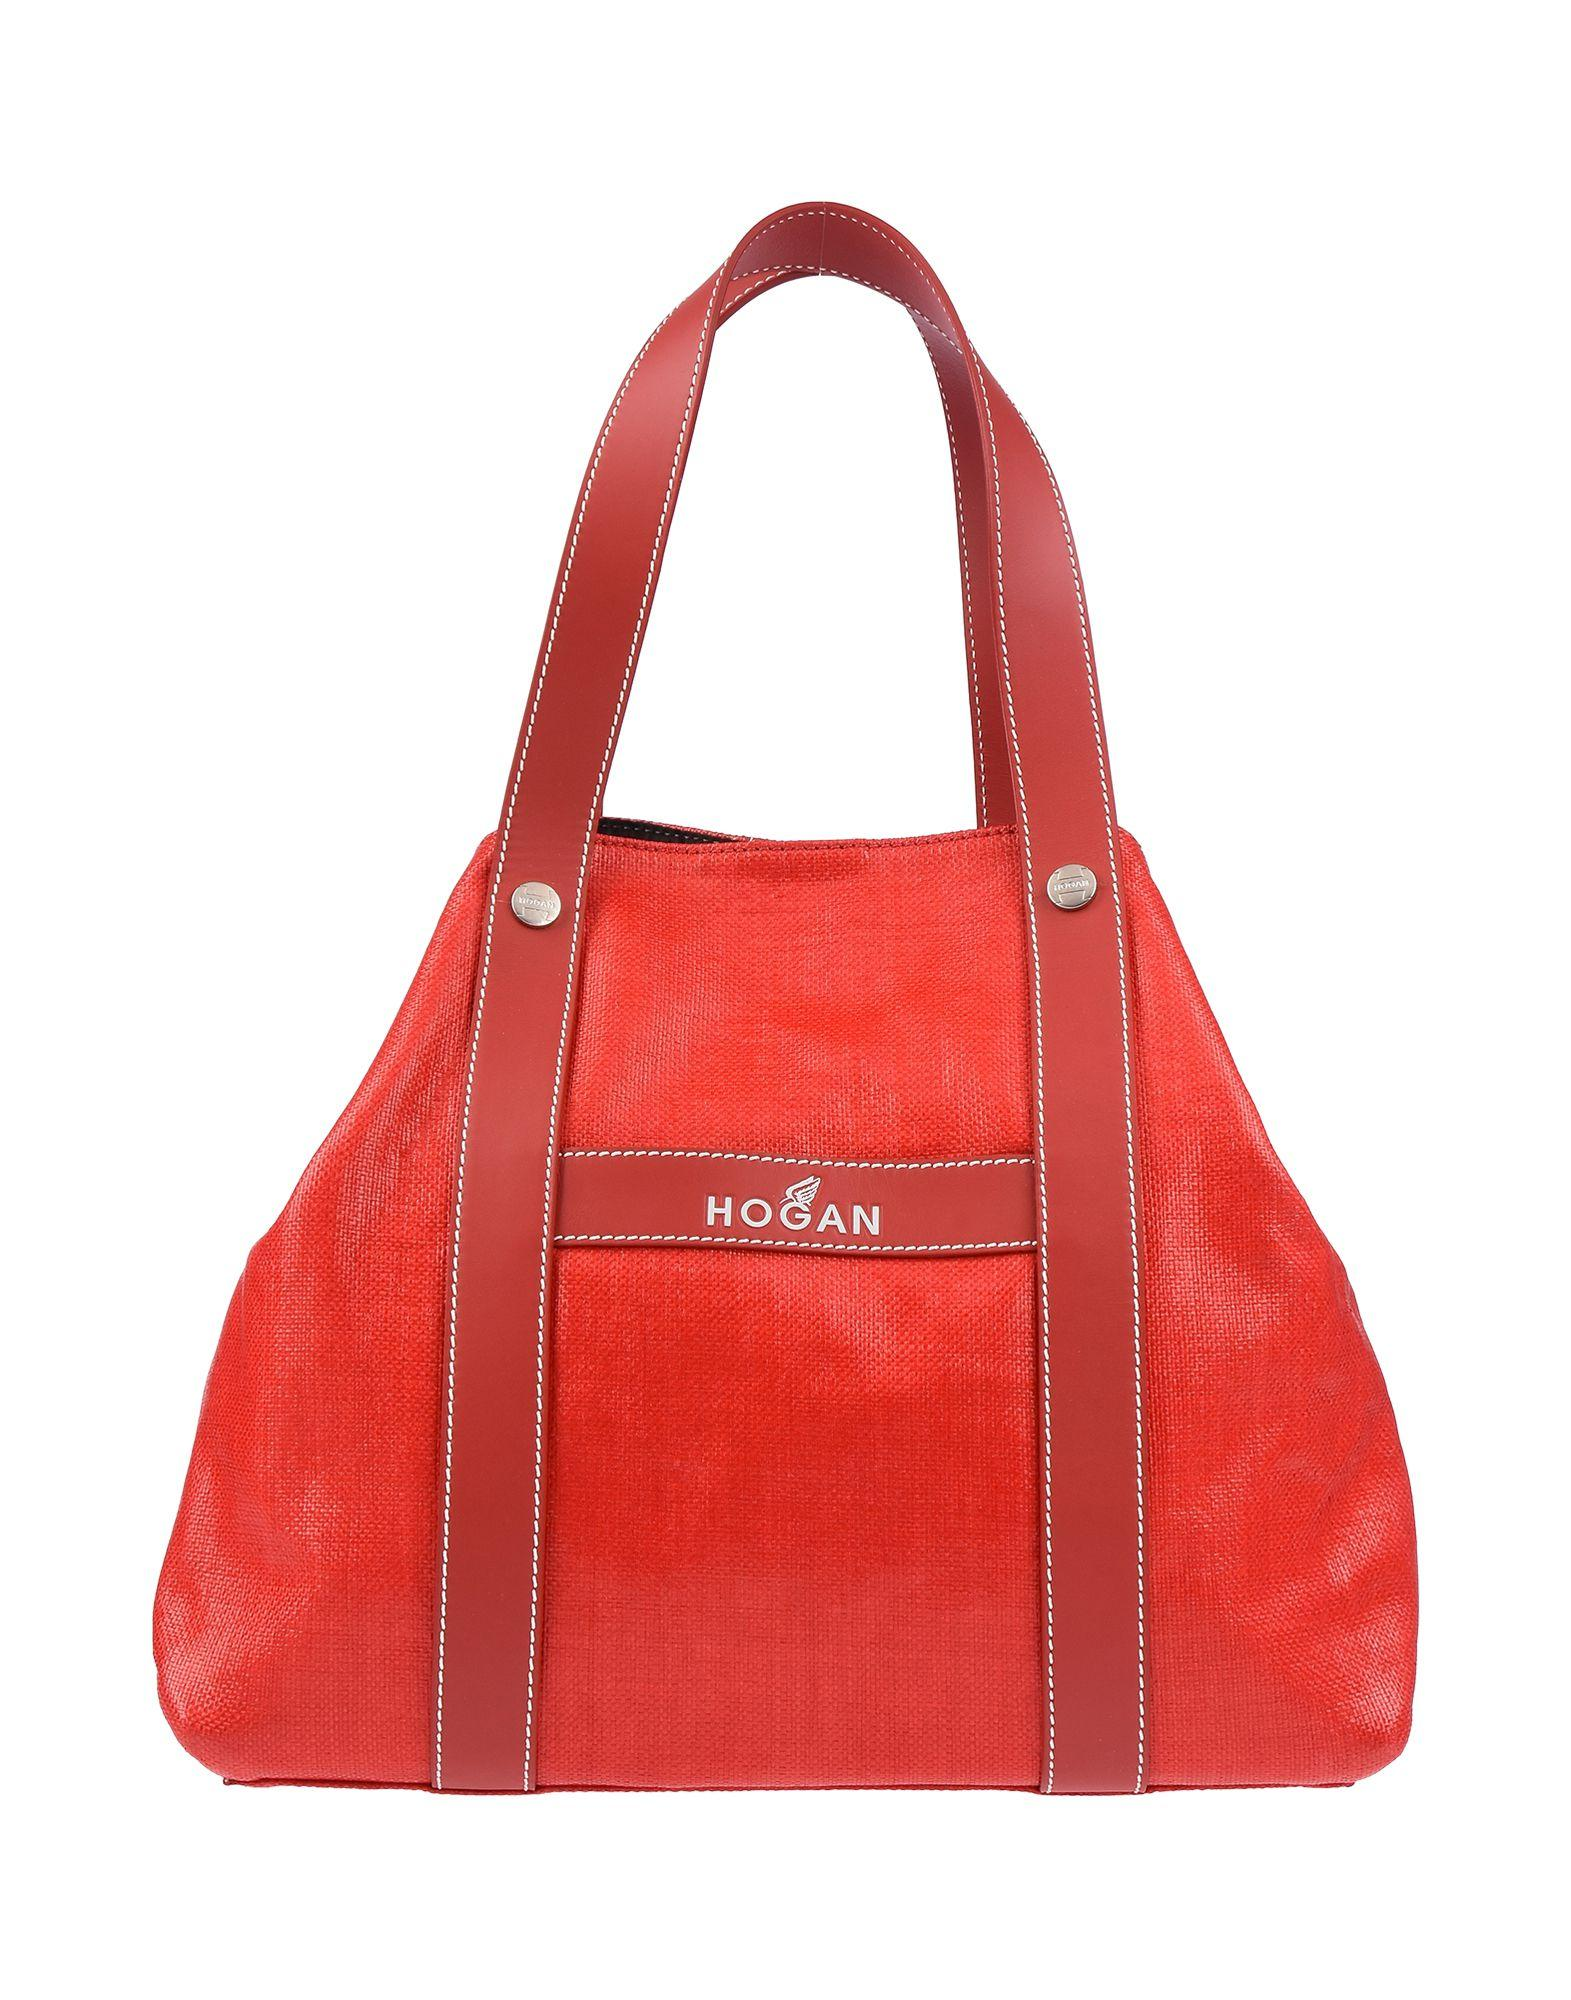 Hogan - Red Handbag - Lyst. View fullscreen aec406576c127